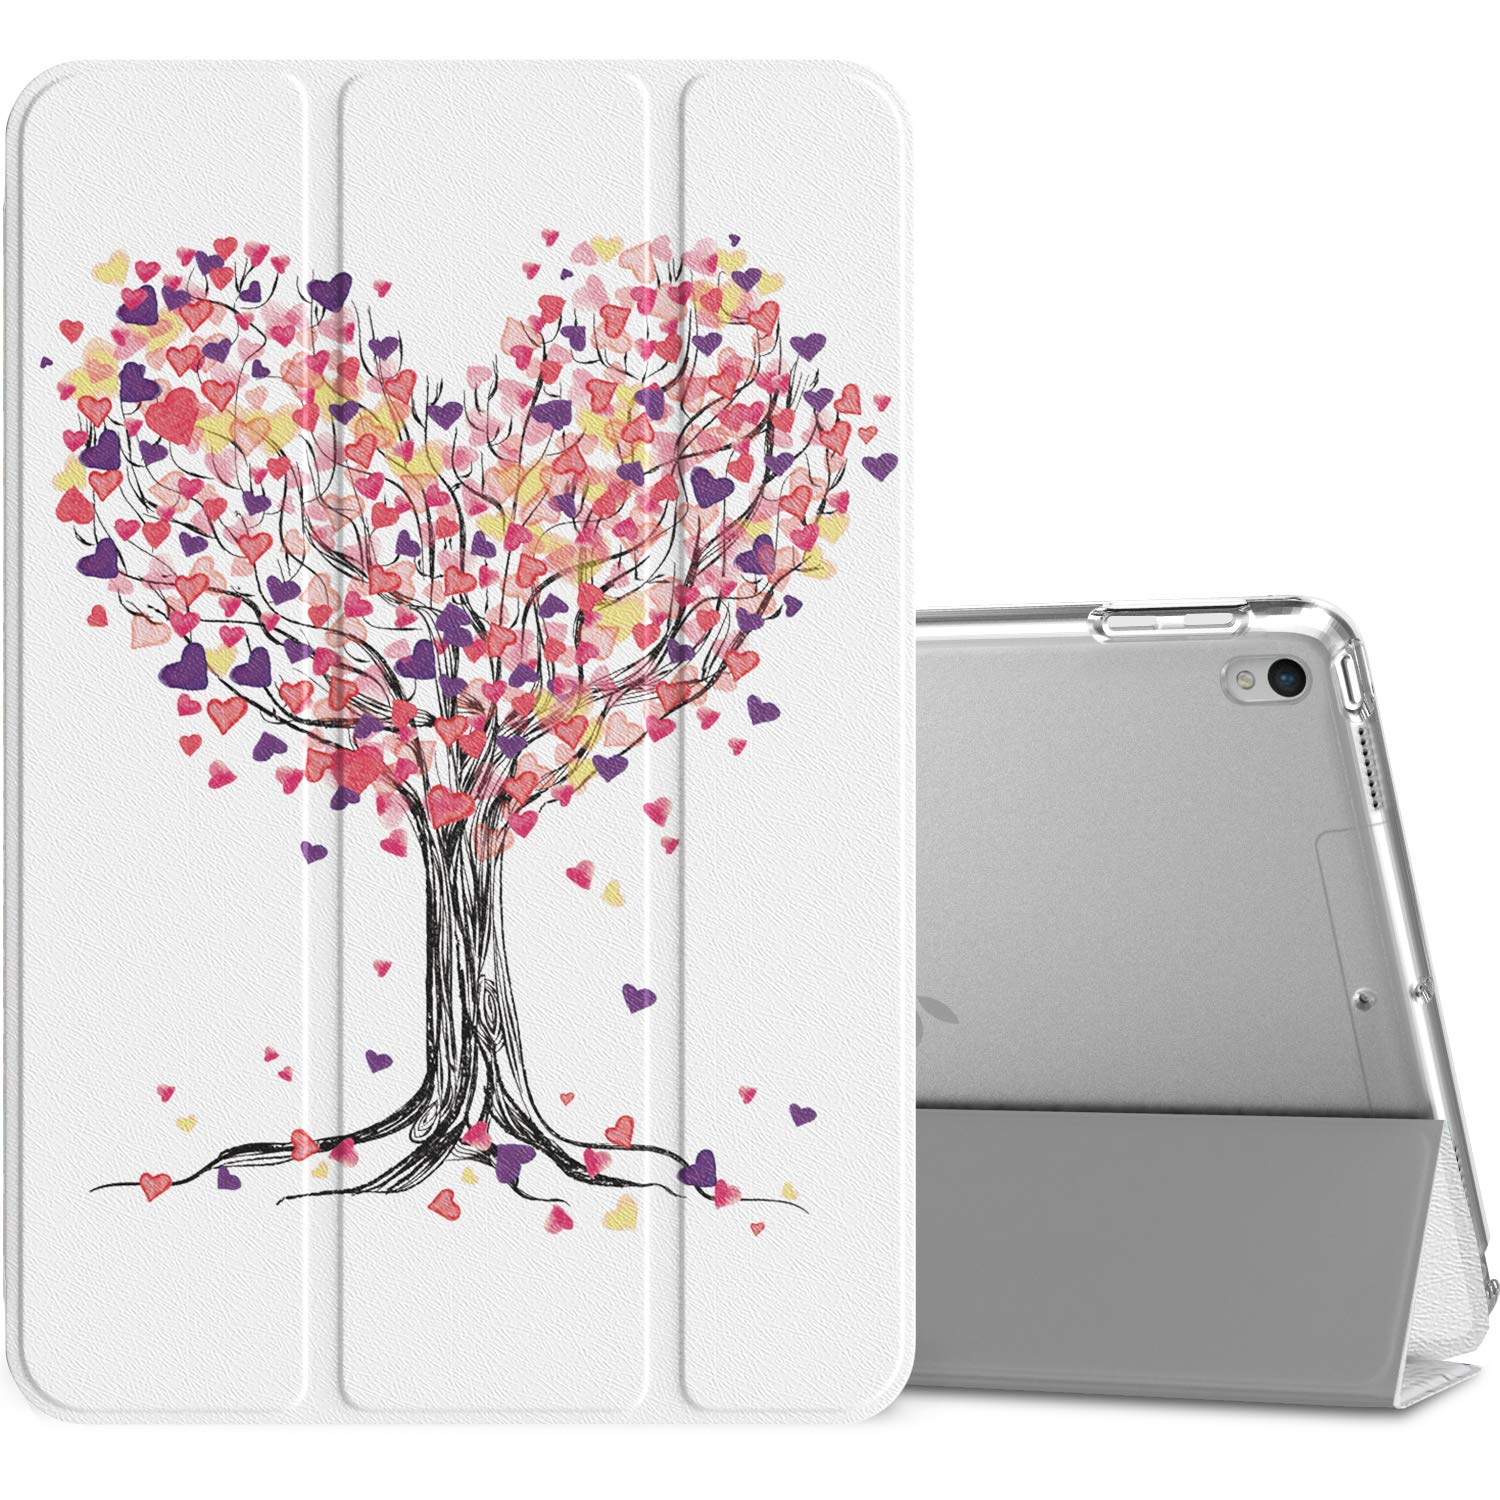 """MoKo Case Fit New iPad Air (3rd Generation) 10.5"""" 2019/iPad Pro 10.5 2017 - Slim Lightweight Smart Shell Stand Cover with Translucent Frosted Back Protector - Love Tree (Auto Wake/Sleep)"""